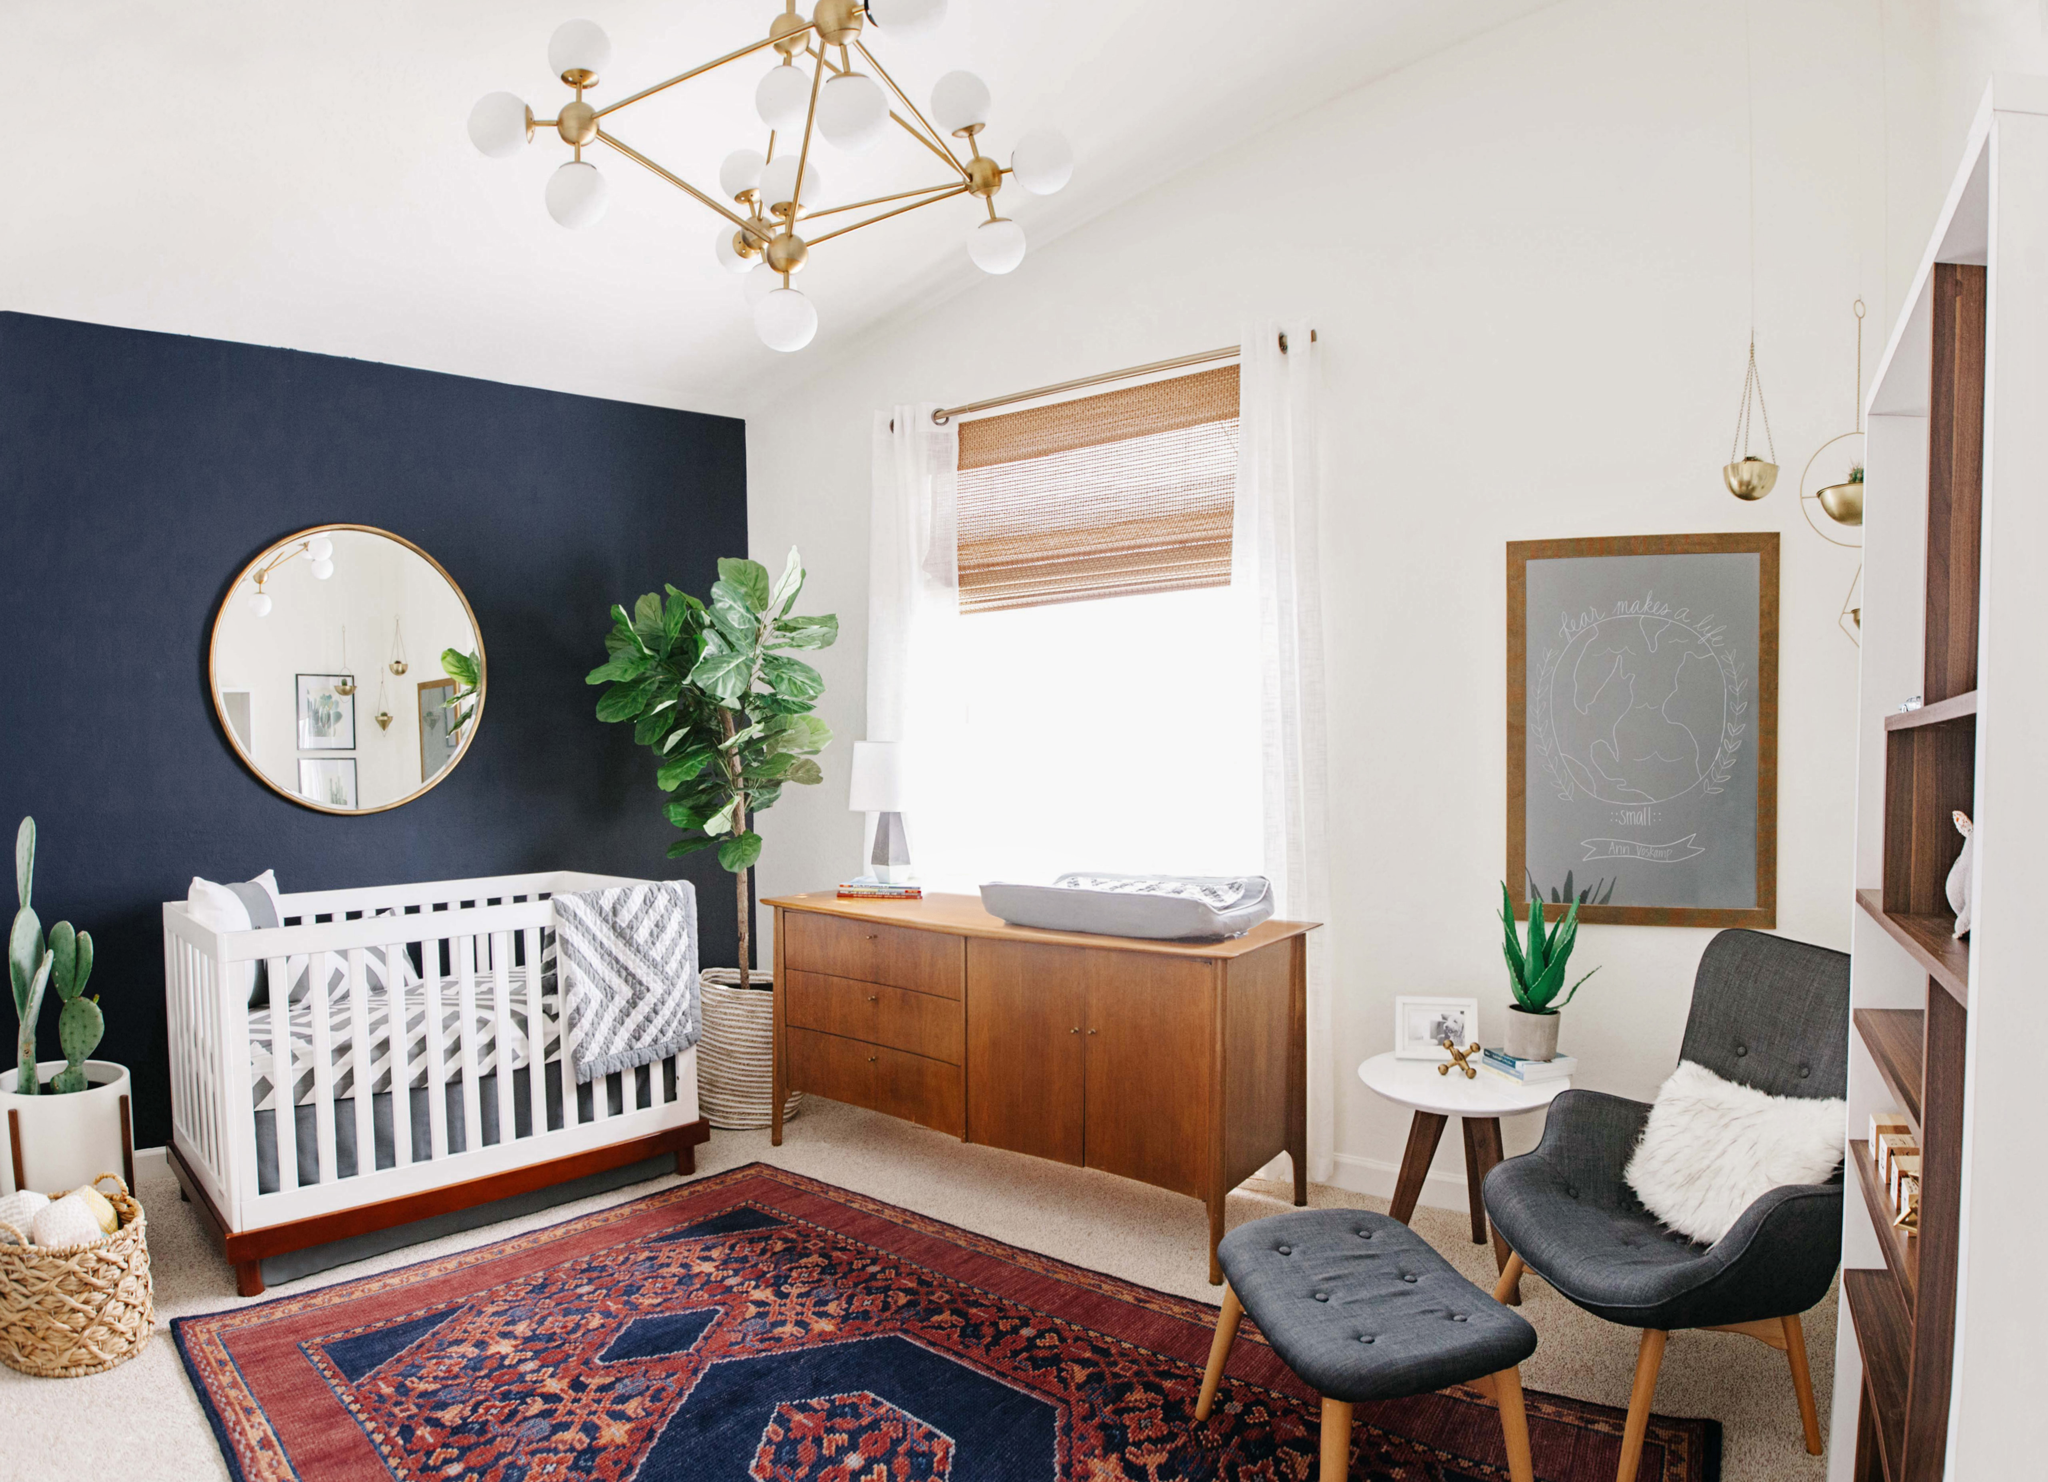 Nursery Design alexandra evjen nursery reveal | modern nurseries, project nursery